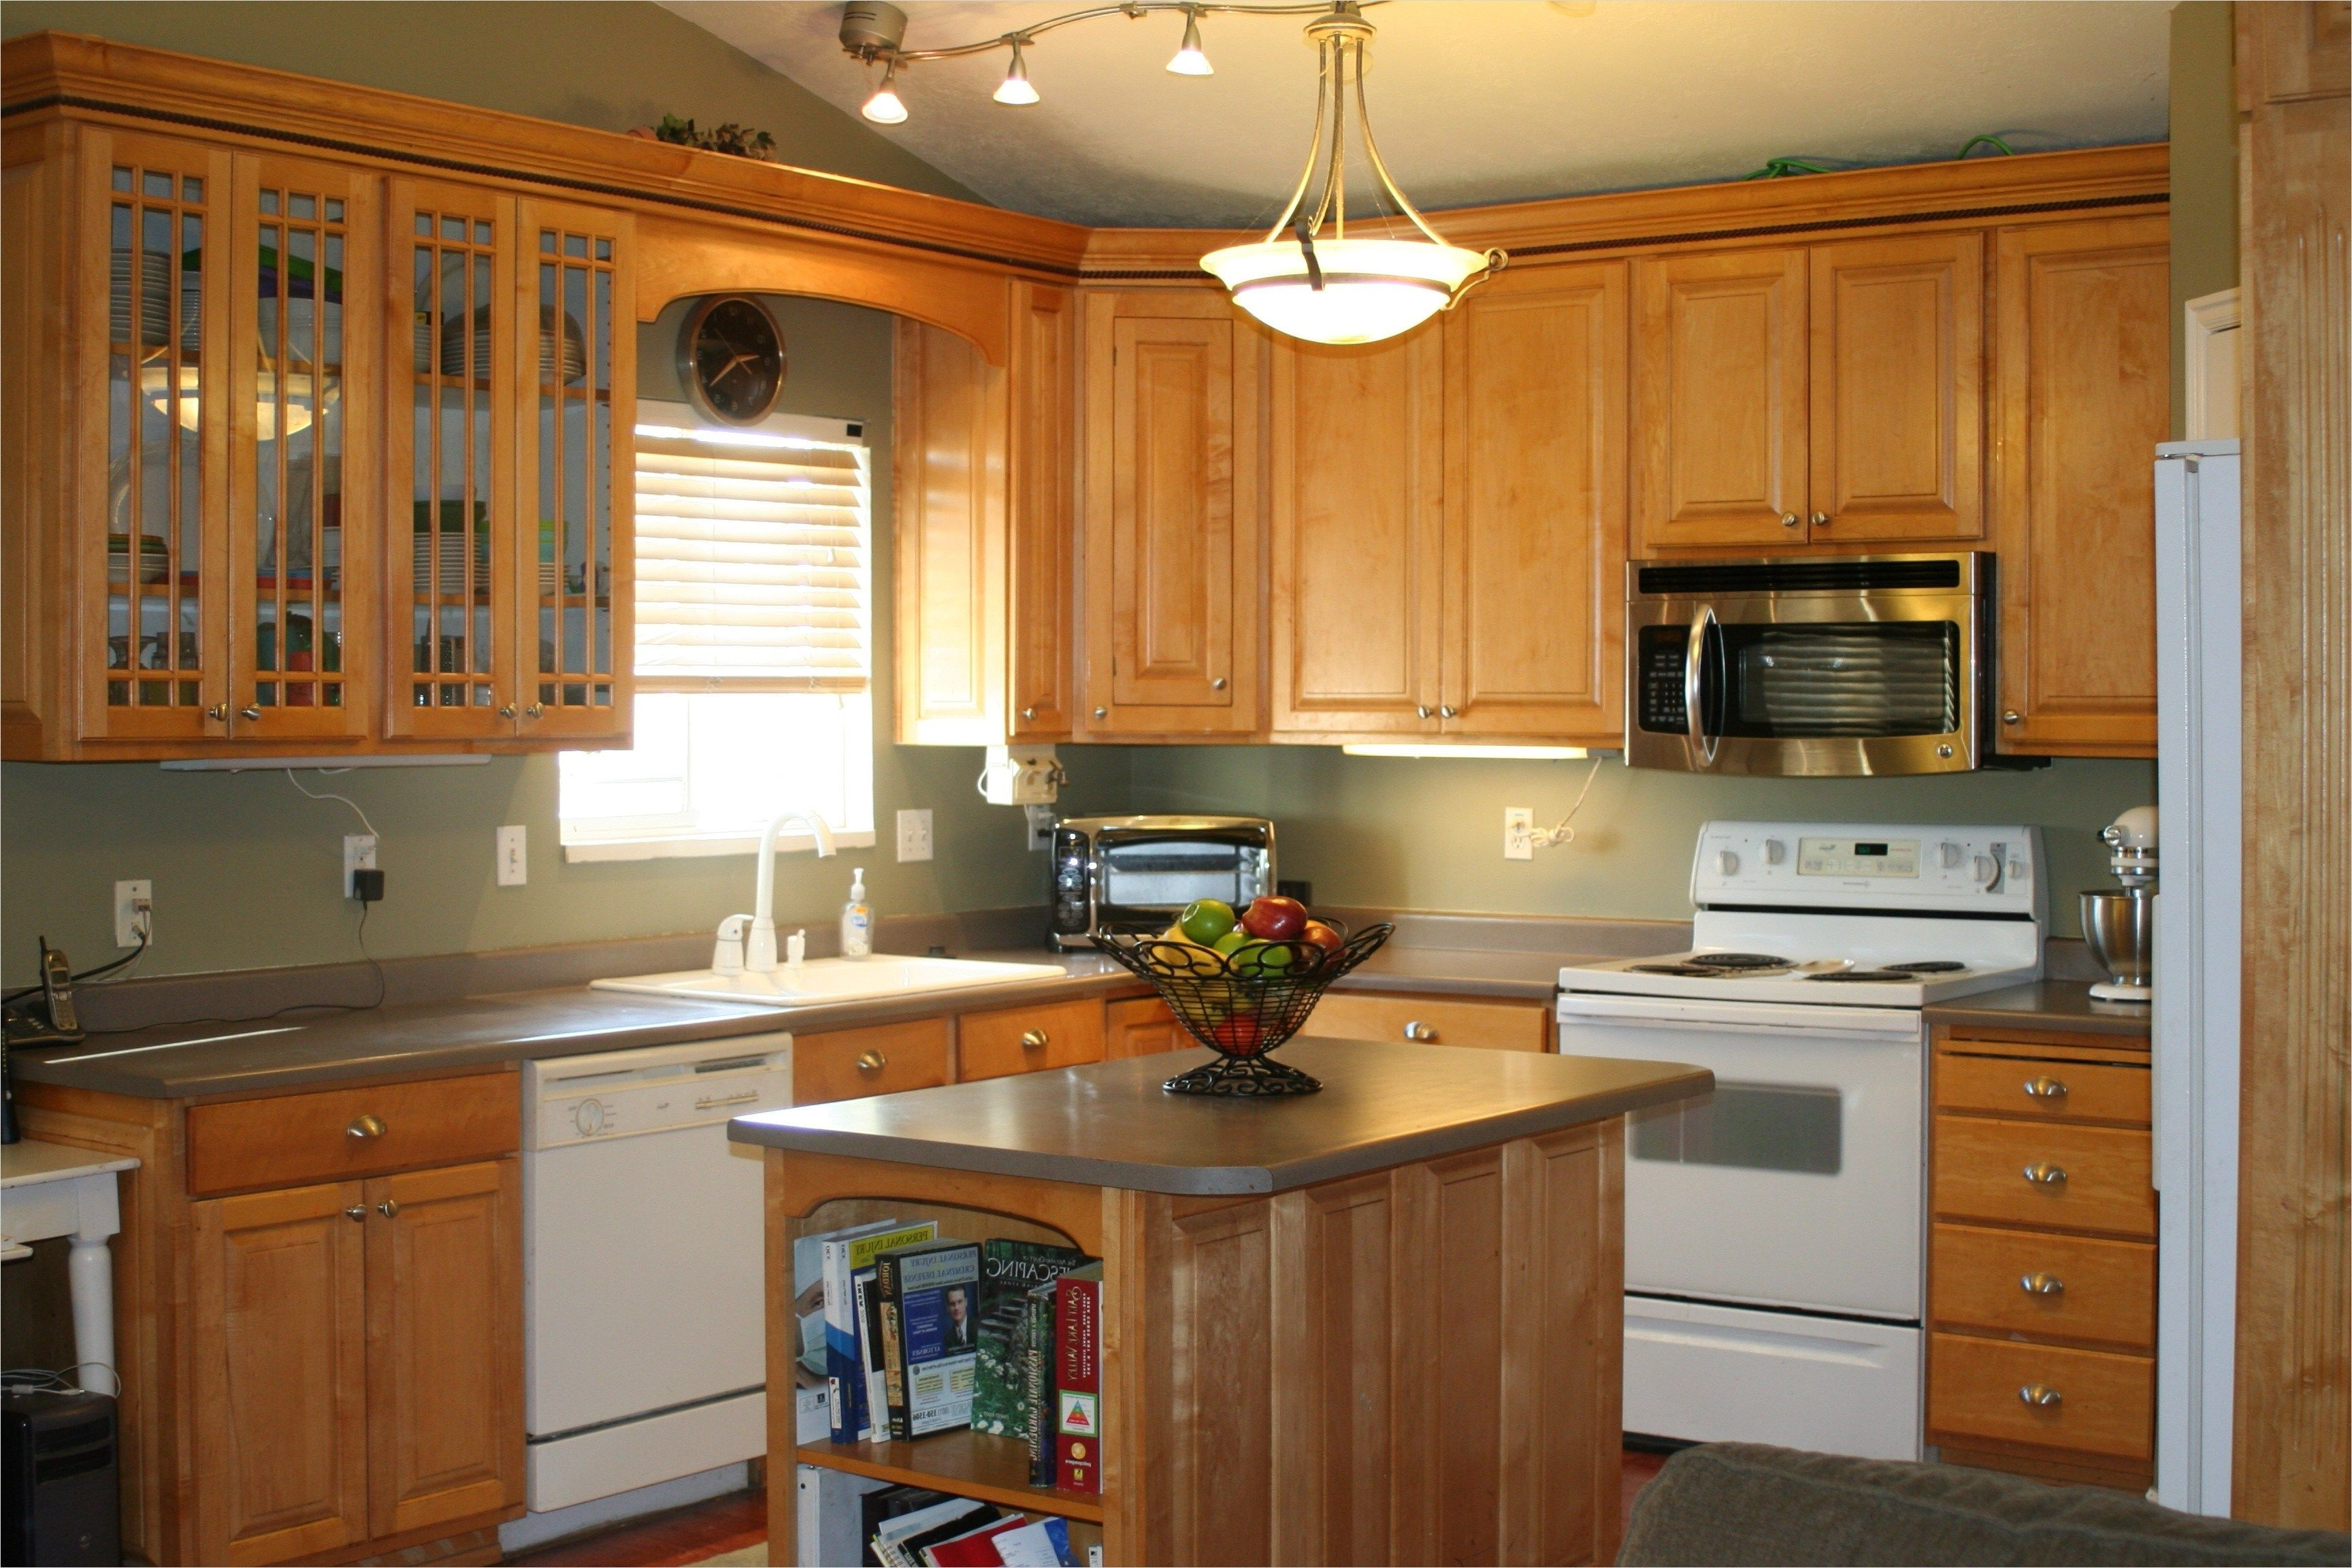 41 Attractive Kitchen with Maple Cabinets Color Ideas ... on Maple Cabinets Kitchen Ideas  id=16457